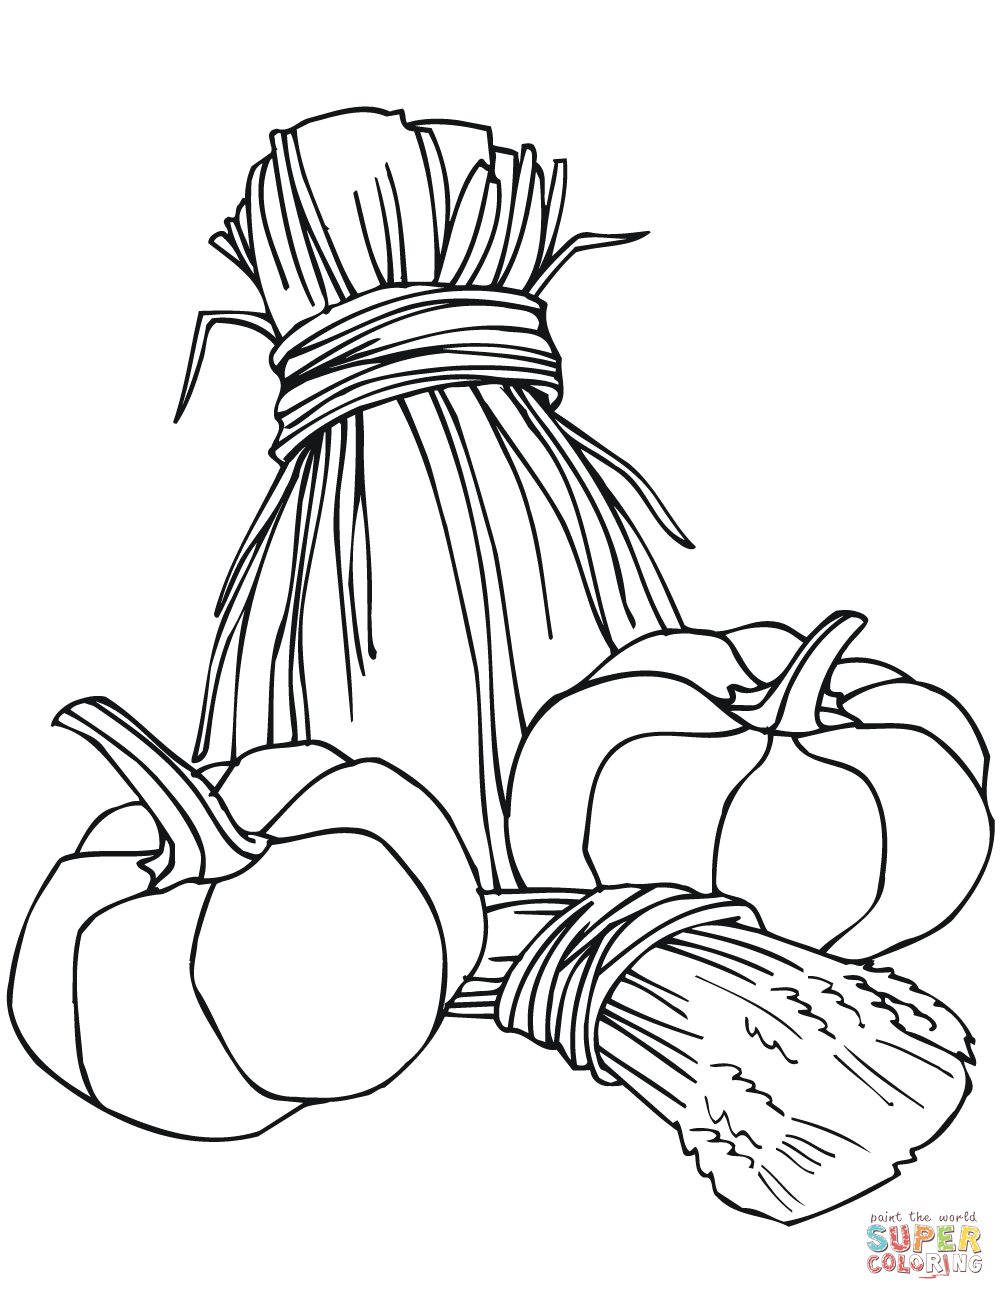 Wheat Coloring Pages To Print Coloring Pages